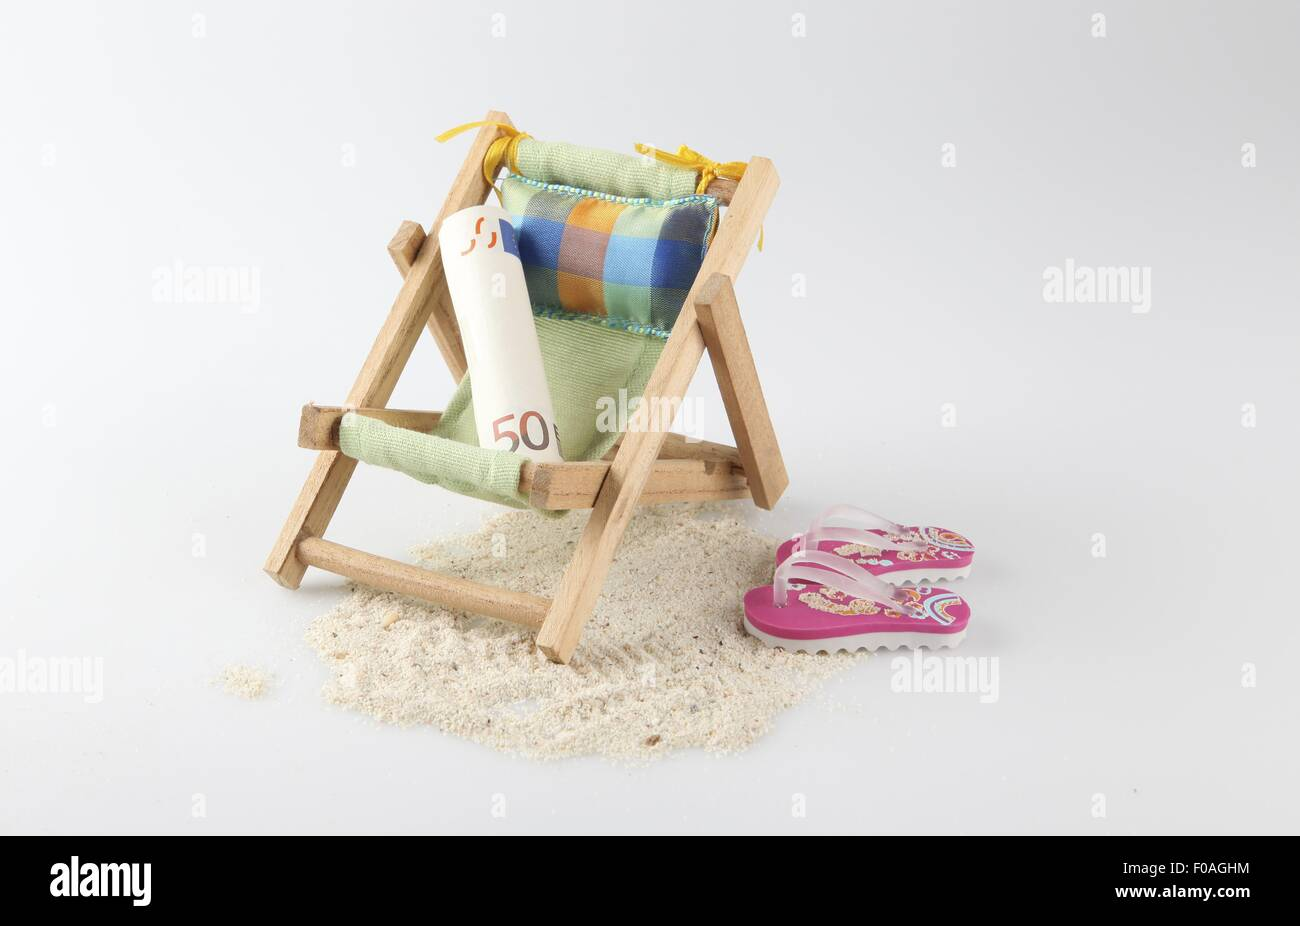 Flip Flop Chair Bed Rolled Up Currency On Small Deck Chair With Flip Flops And Sand